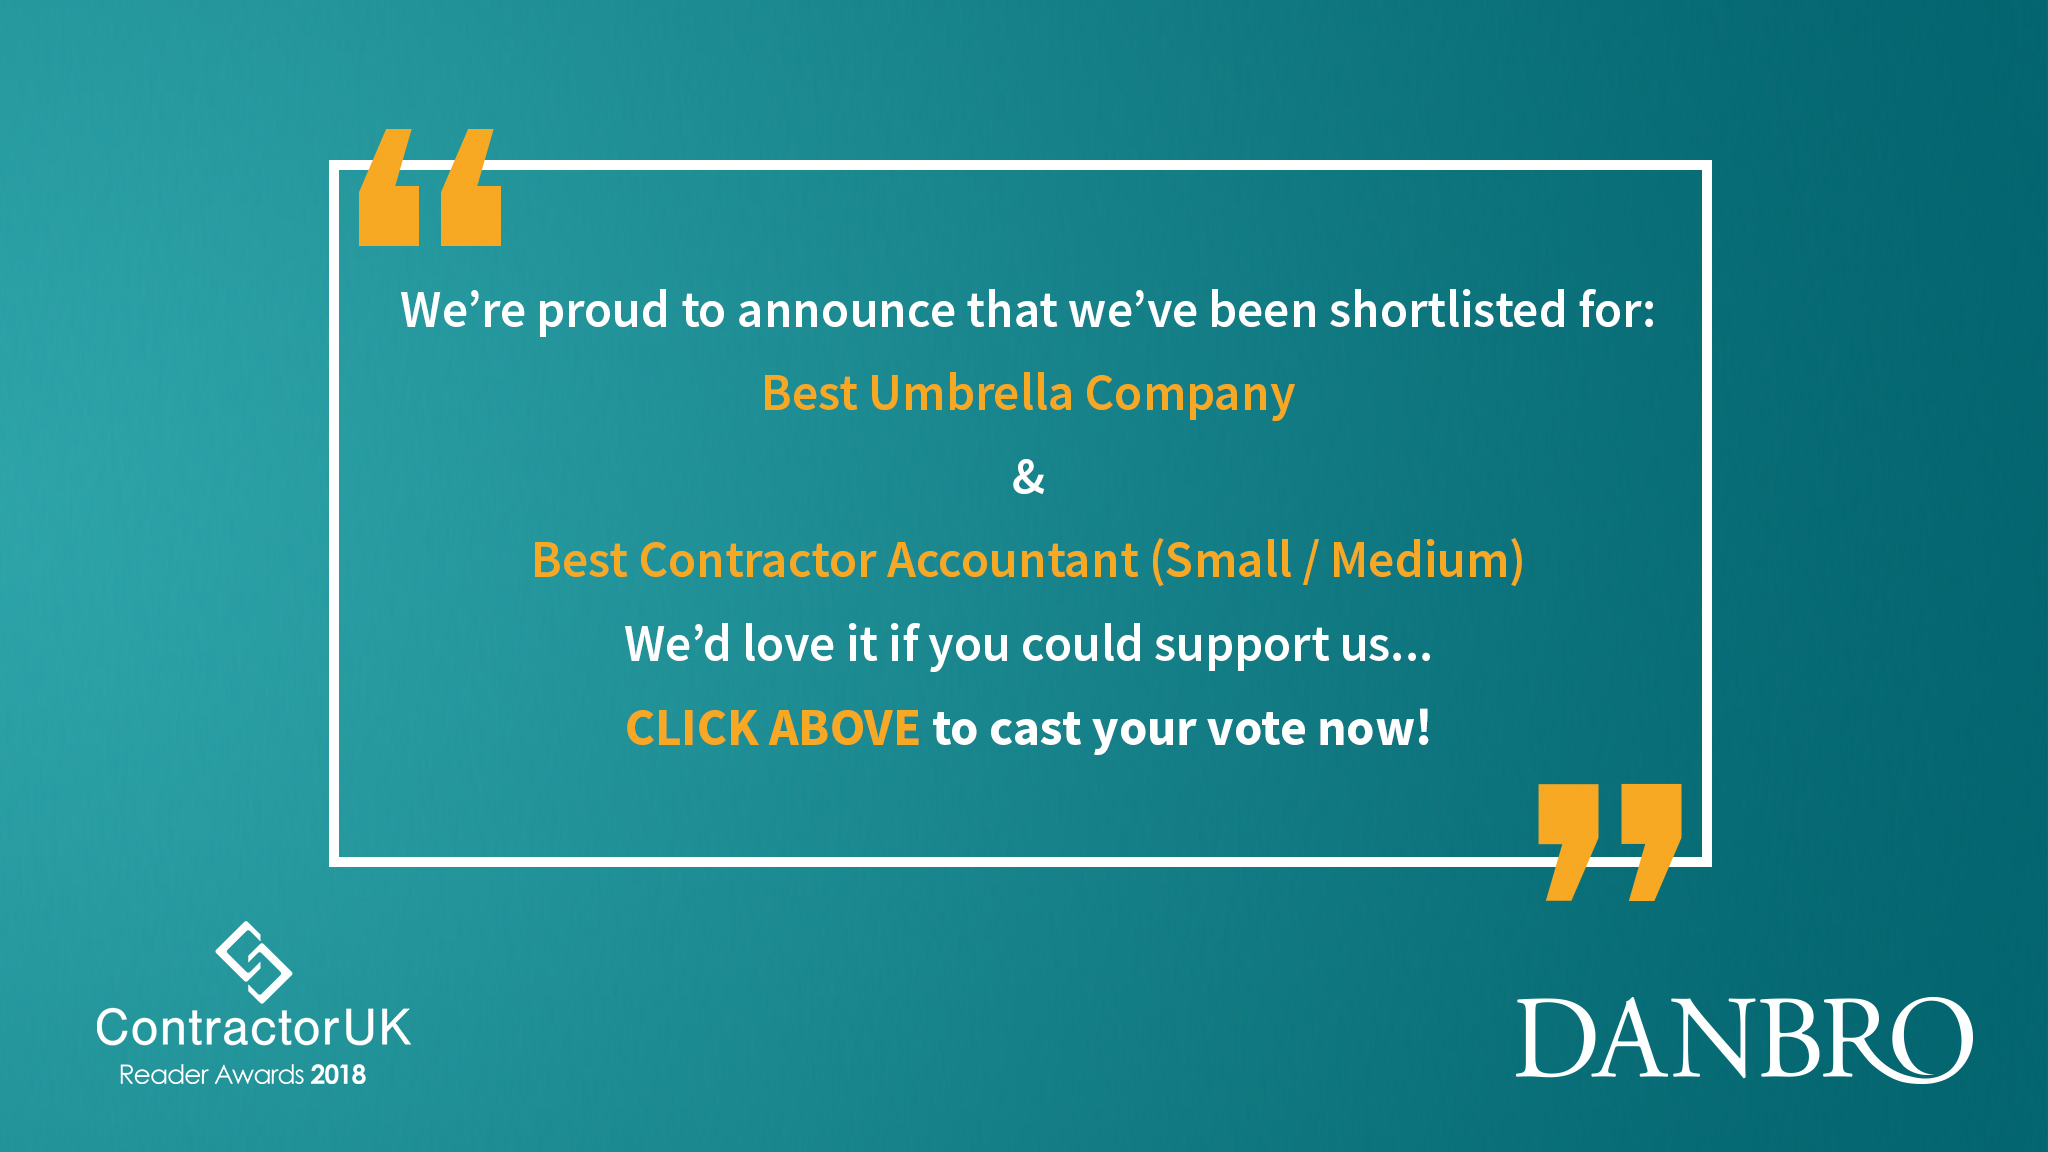 Danbro Nominated for Contractor UK Award